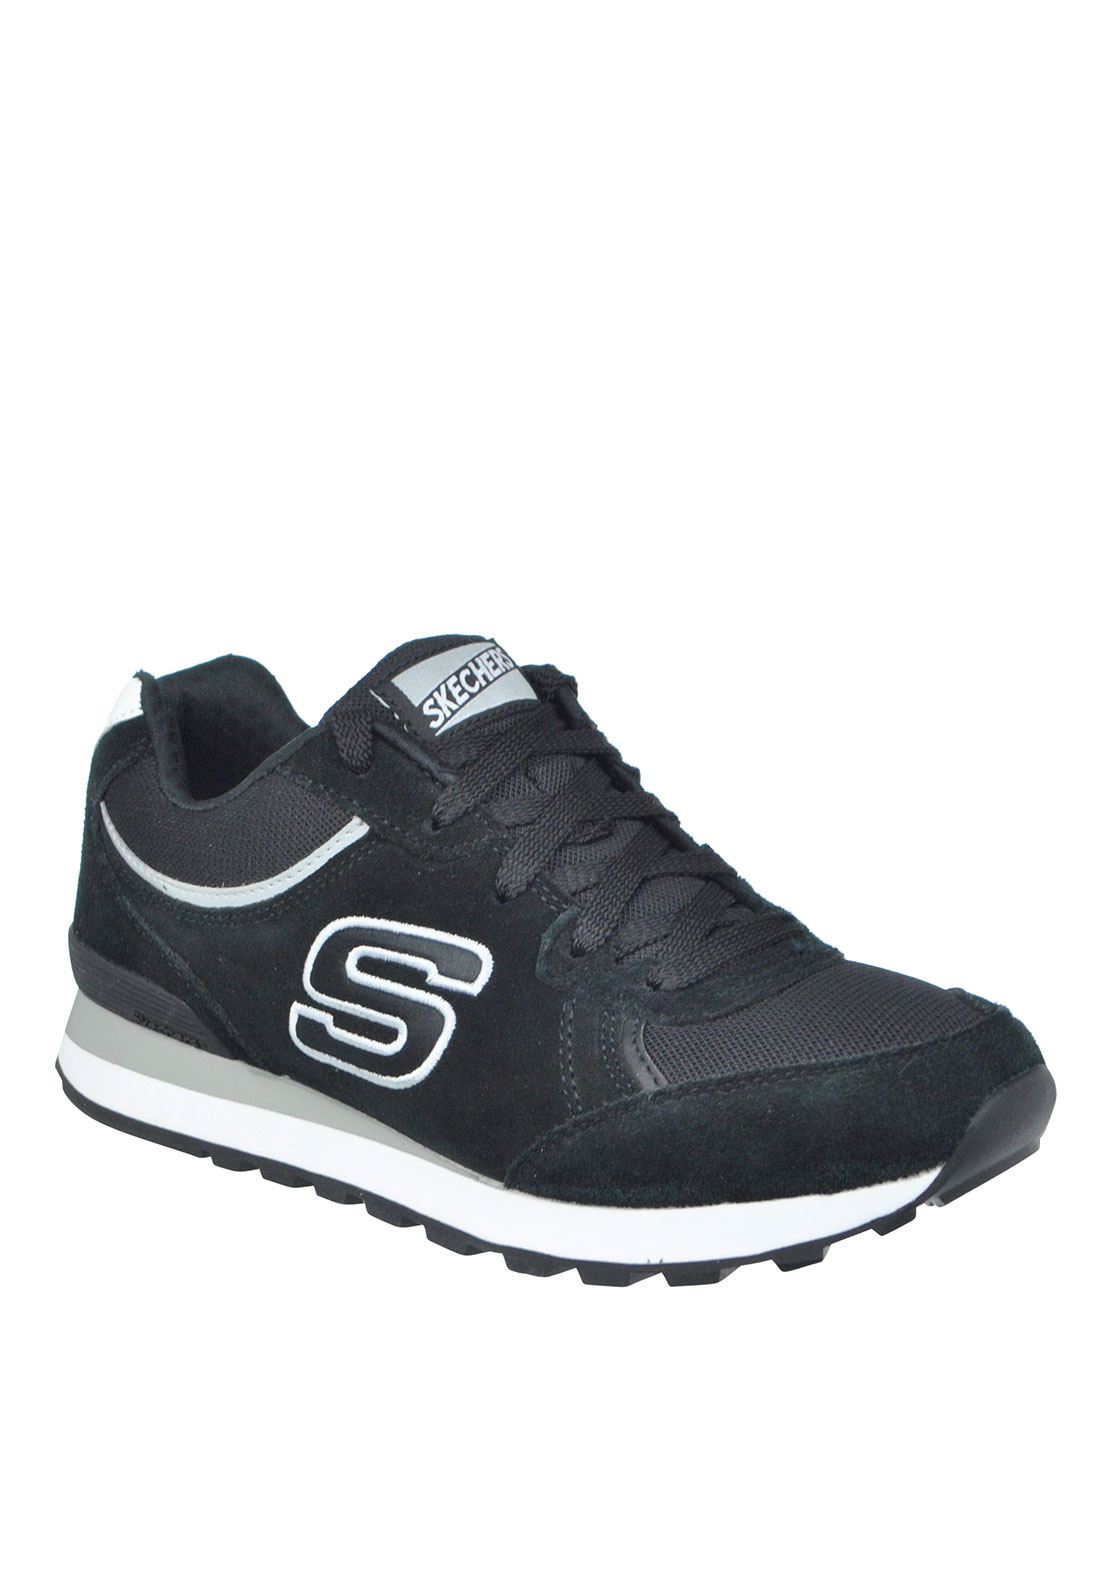 Skechers Womens Originals Suede Memory Foam Retro Fit Trainers, Black